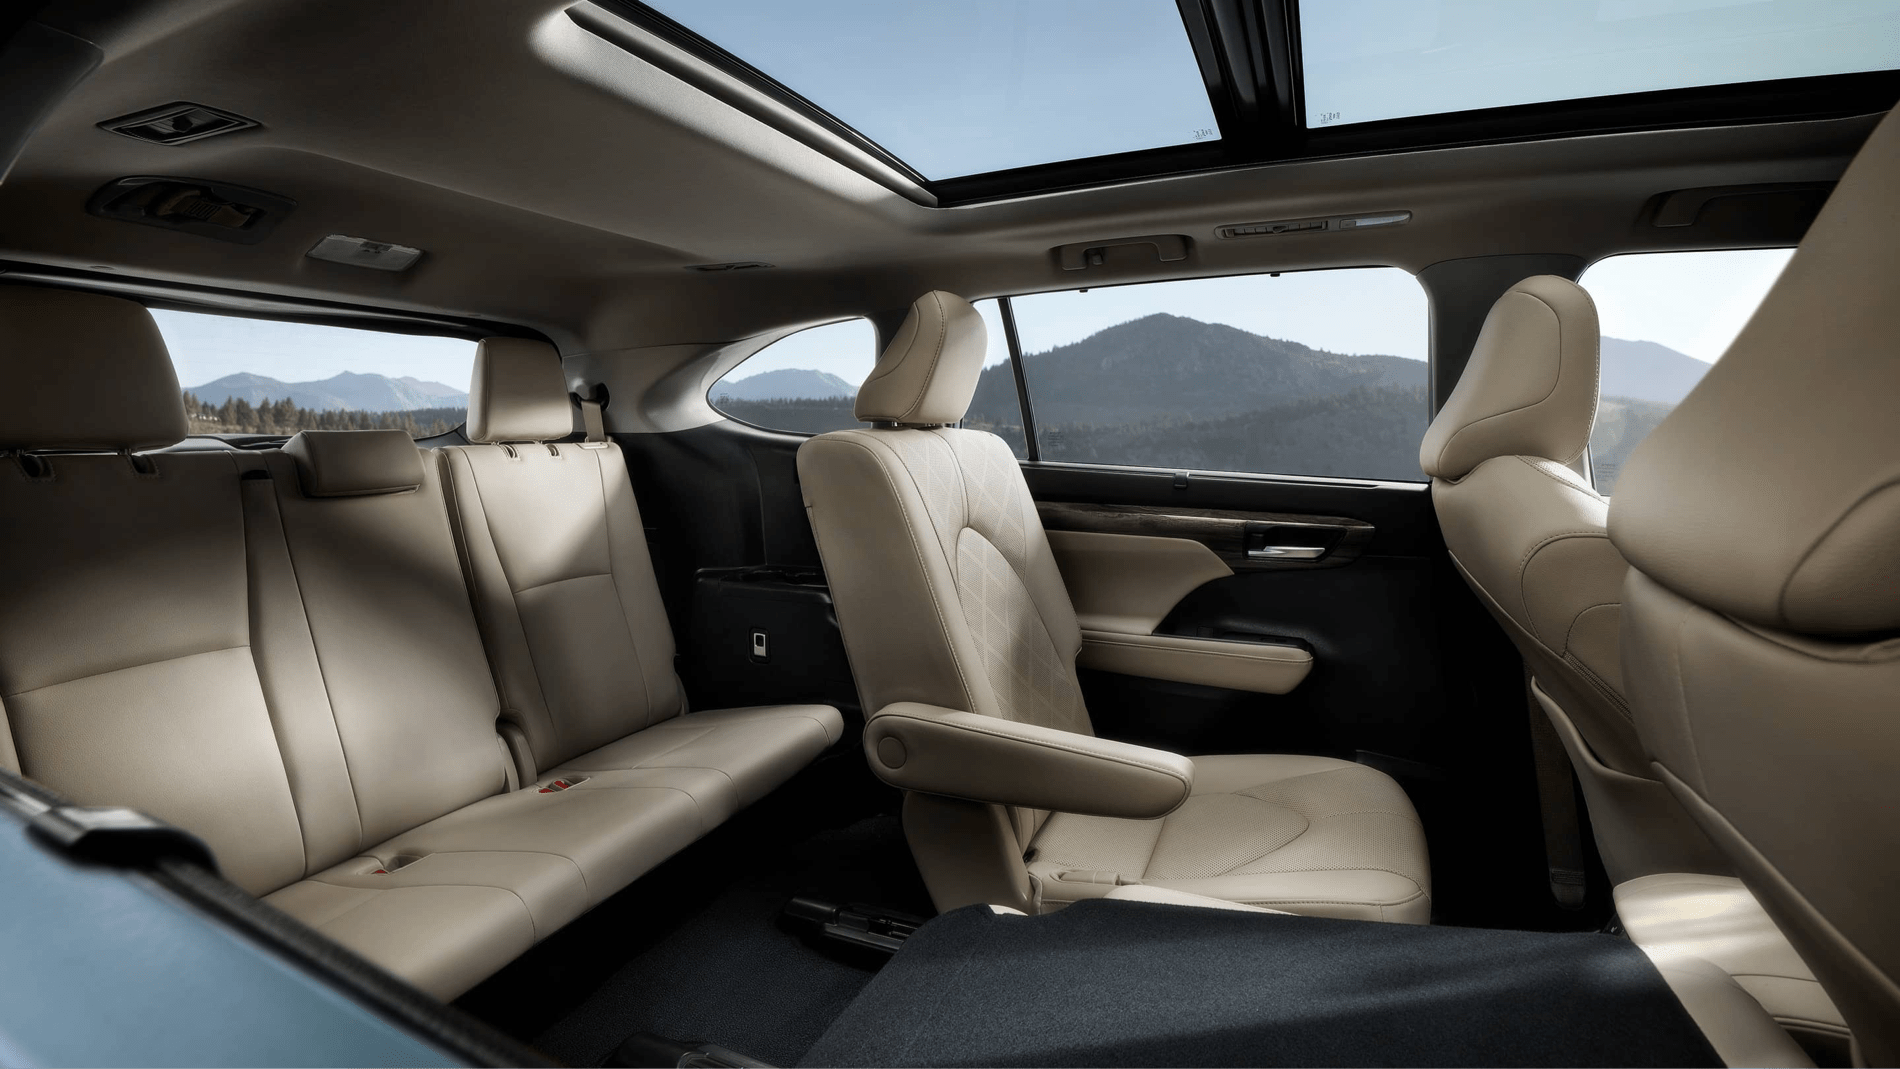 2020 Highlander leather seats